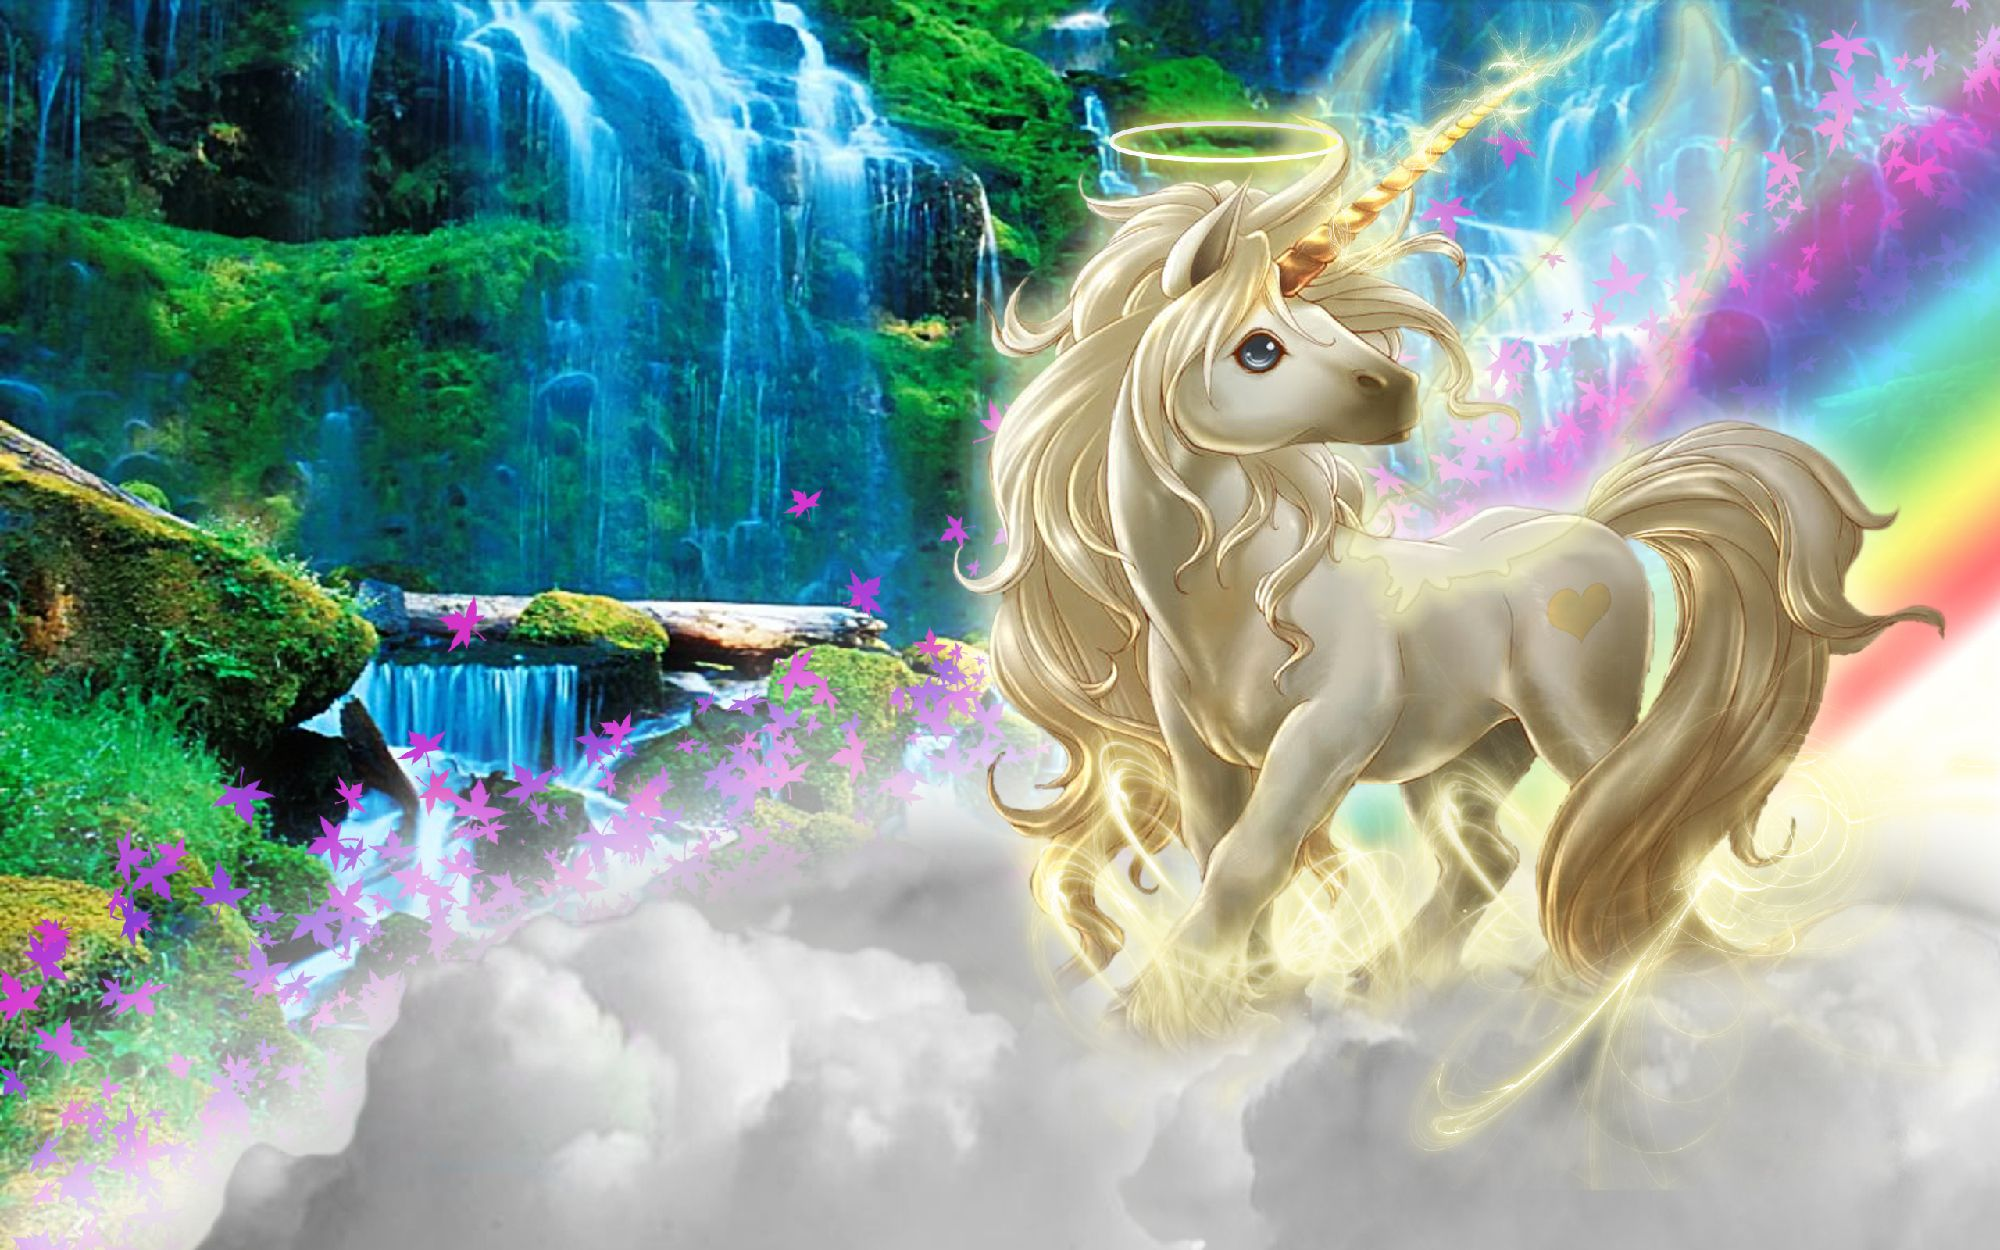 Cool Wallpaper Horse Rose - 50e11e86bac7a60939e7e3edd8ada811  Collection_904640.jpg